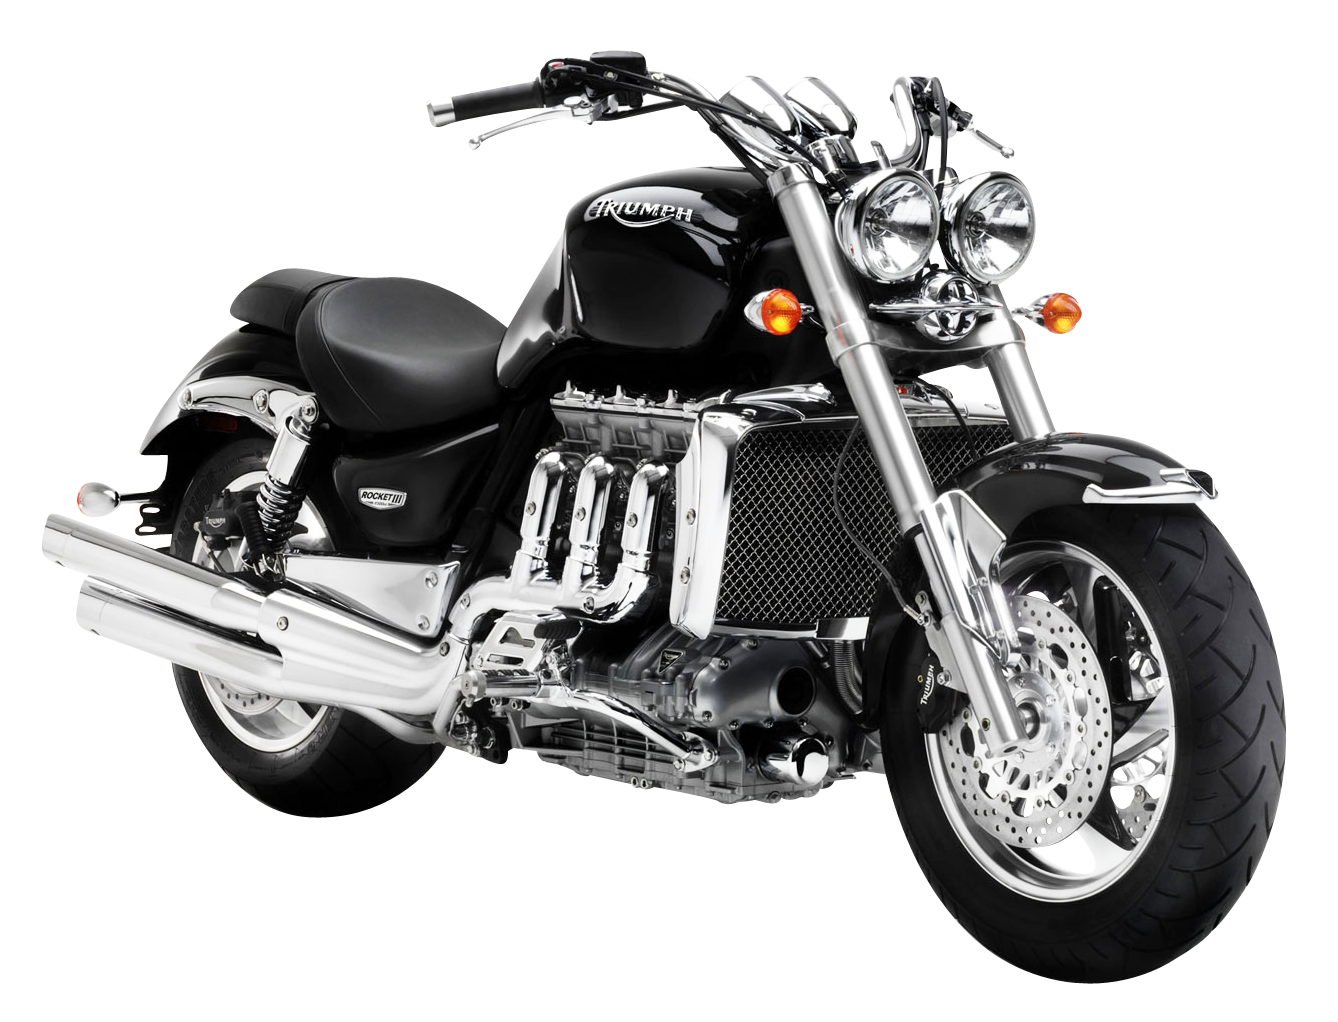 Motorcycle clipart triumph motorcycle. Rocket iii png image